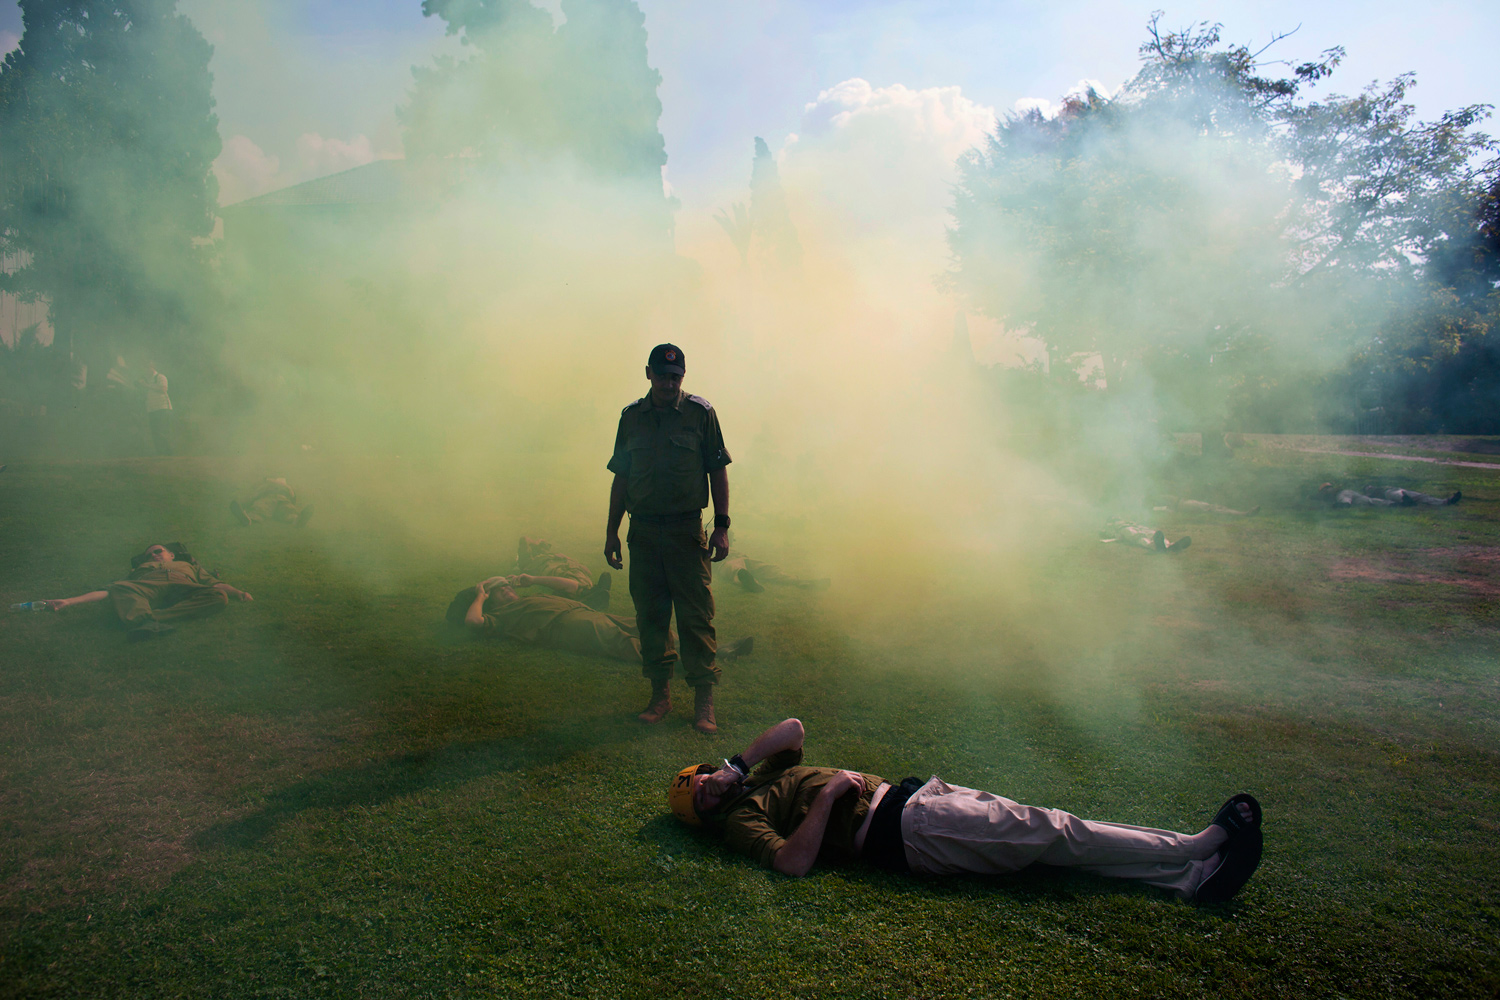 November 3, 2011. Israeli soliders role playing as mock victims lie on the ground during a drill simulating a missile attack in Holon, near Tel Aviv.